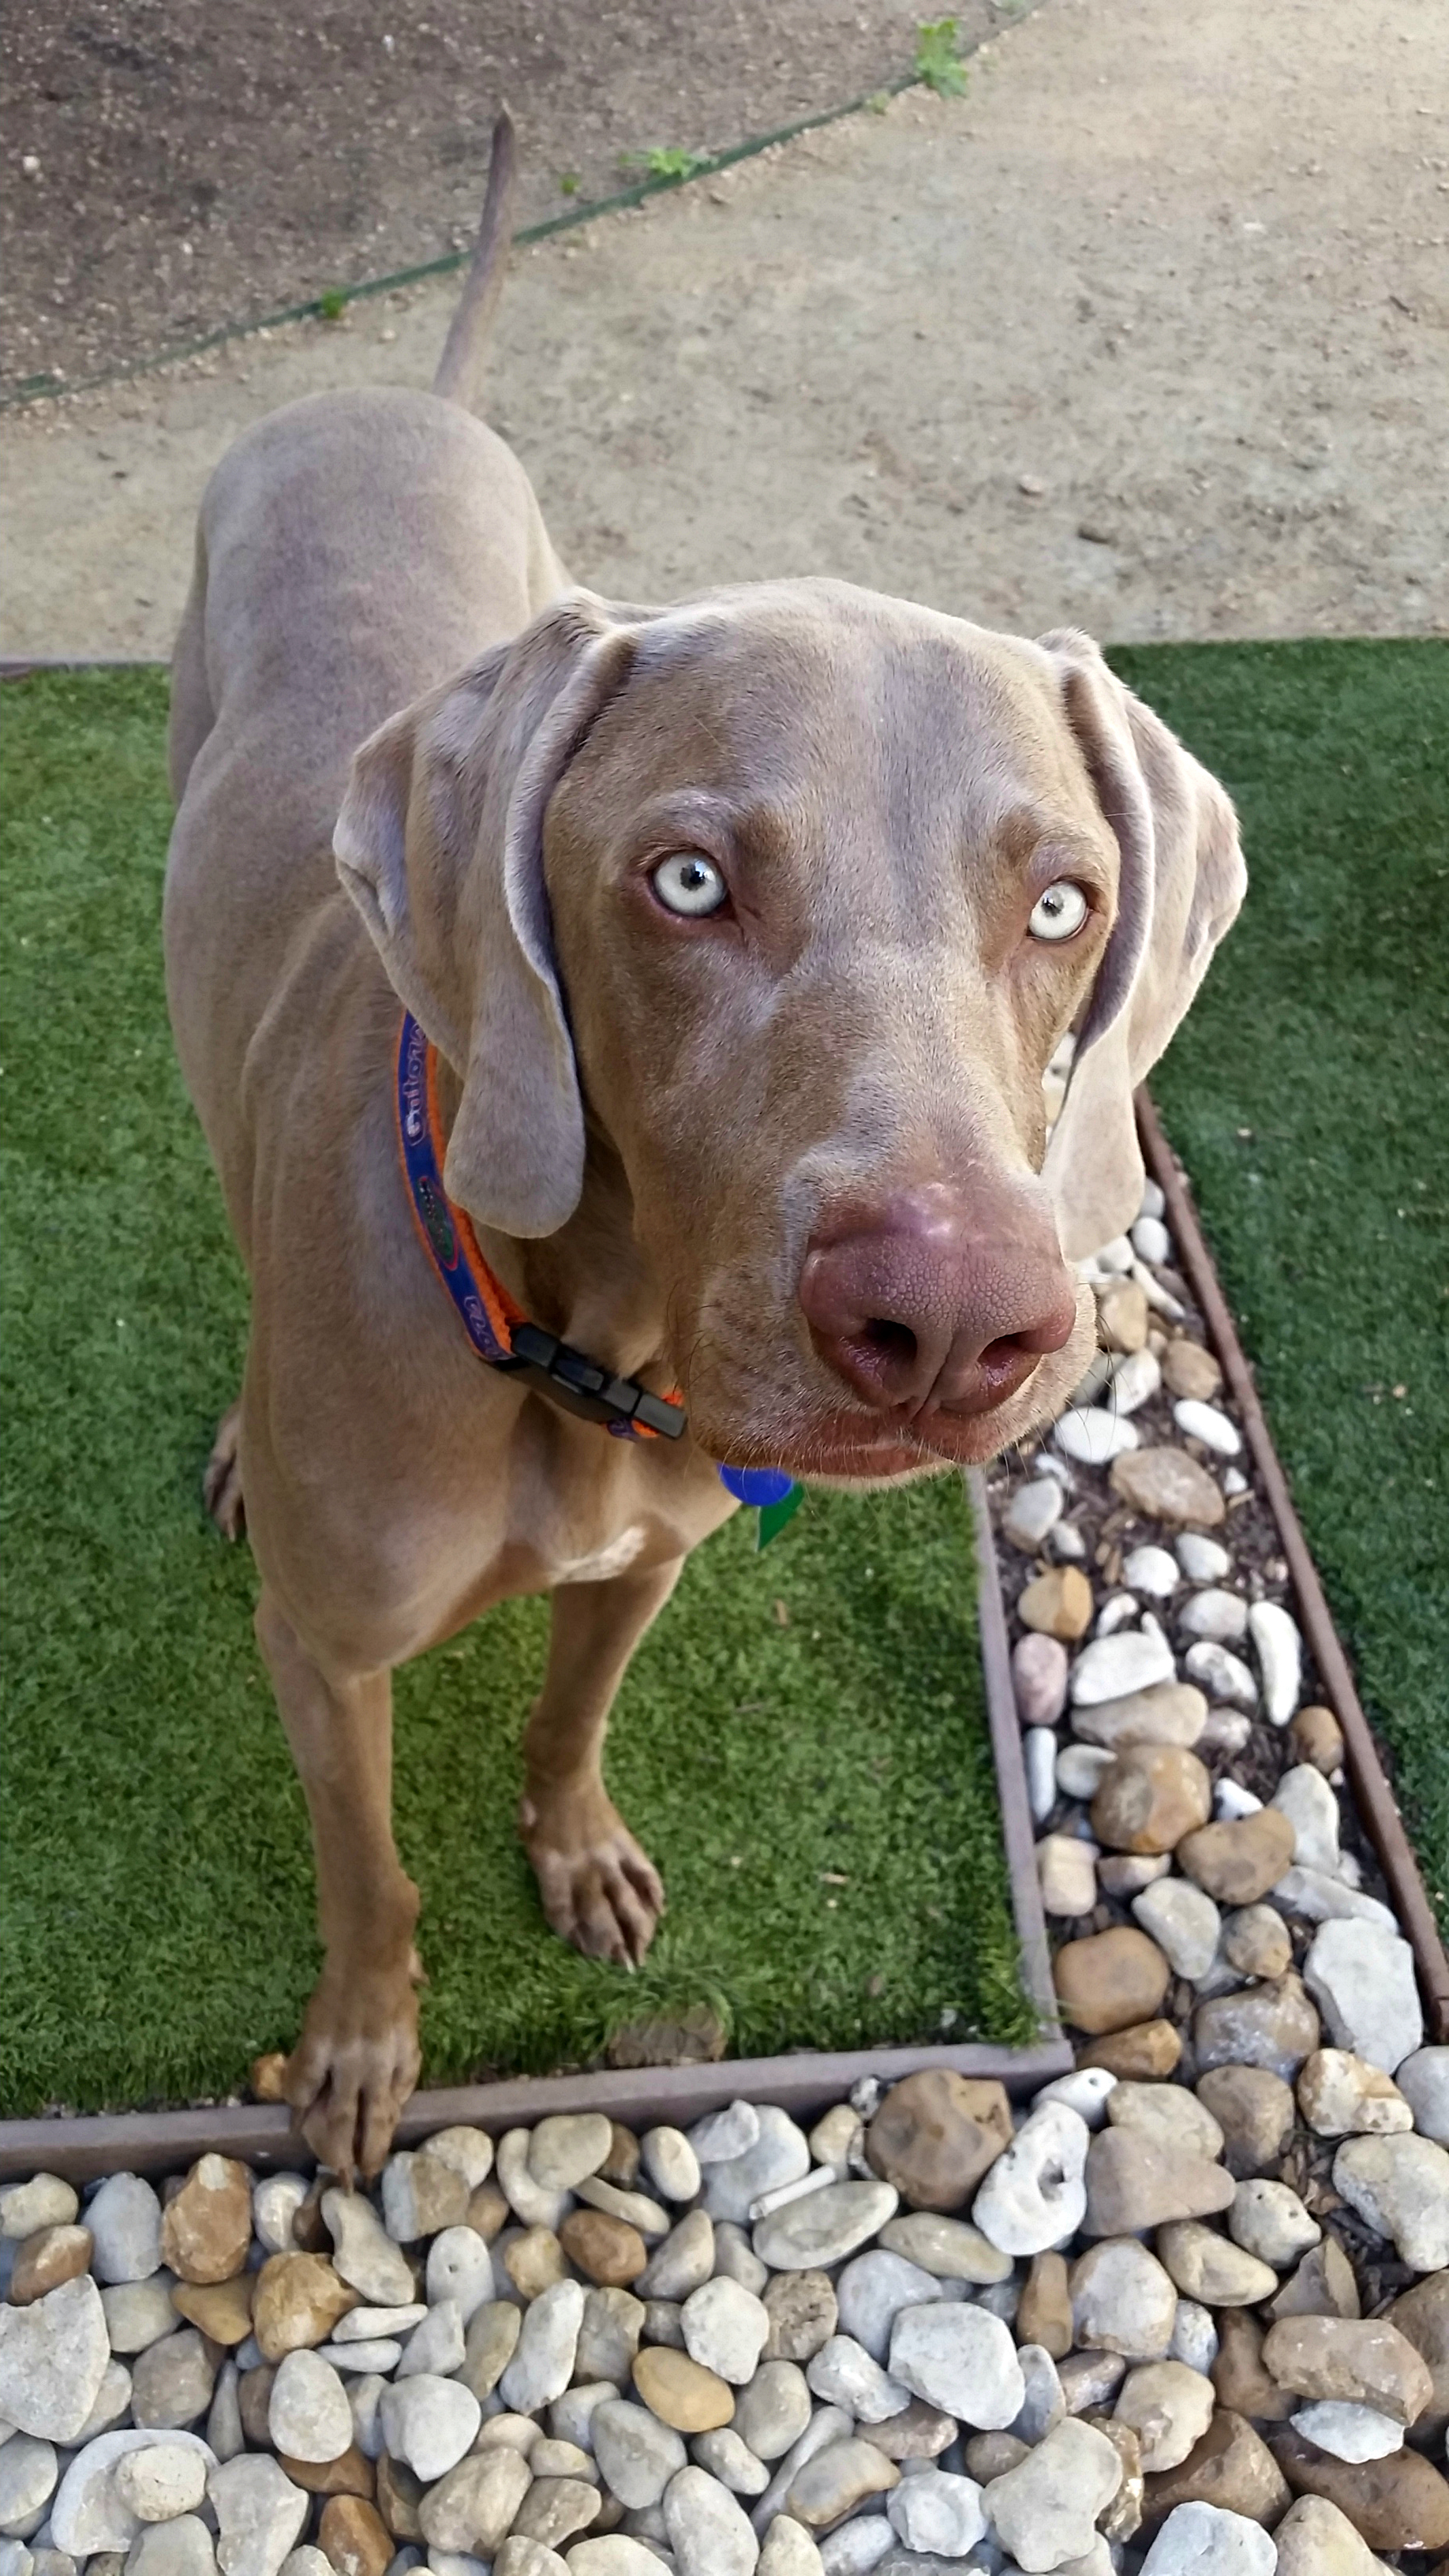 Whistler | @whistlertheweim Adopted from Weimaraner Rescue of Texas in October 2015.